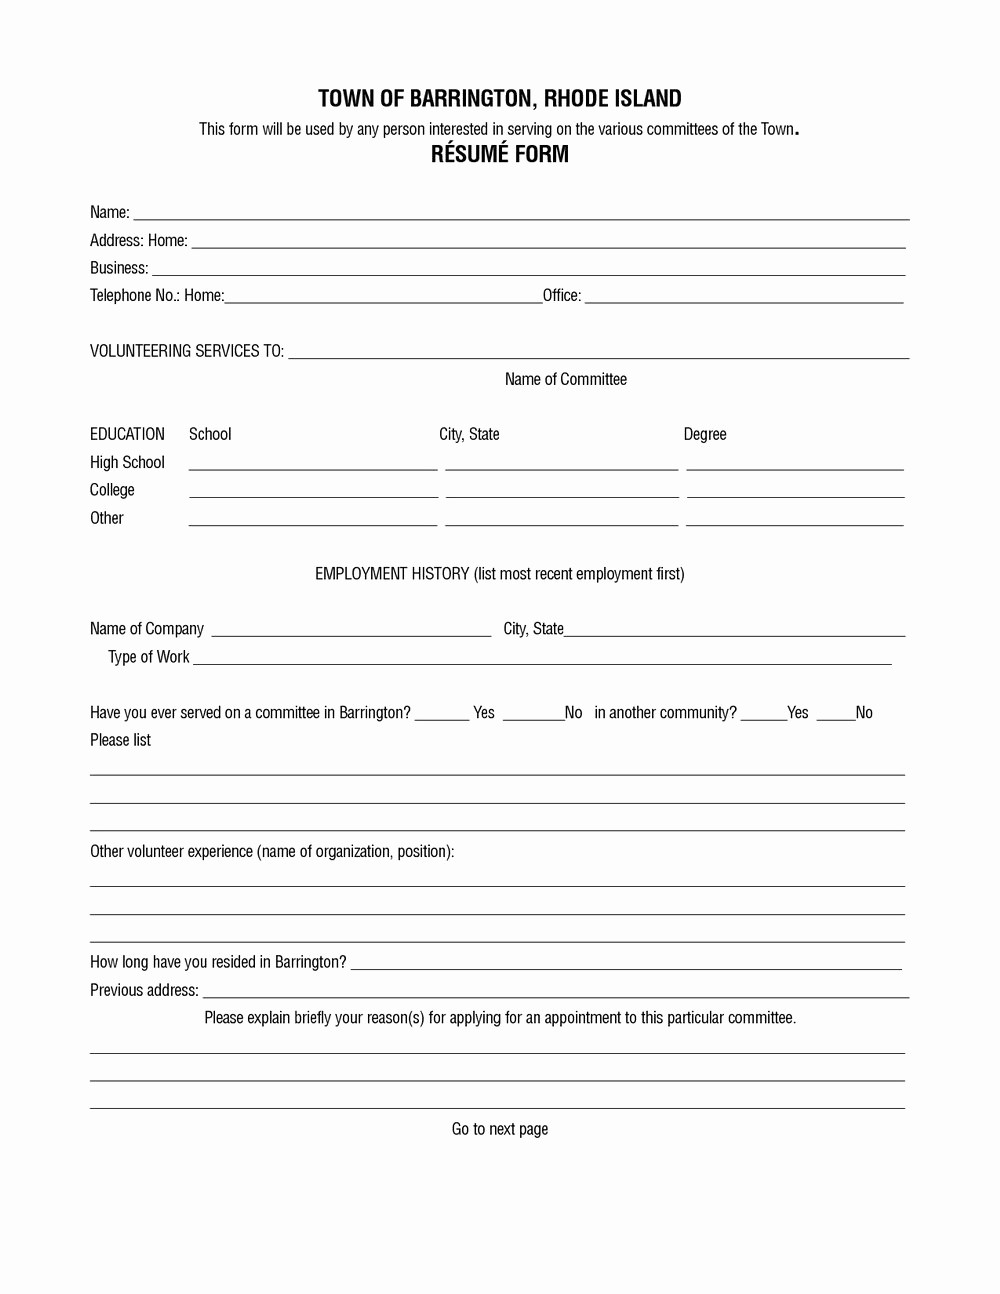 Resume forms to Fill Out Inspirational Blank Resume form to Fill Out Resumes 1046